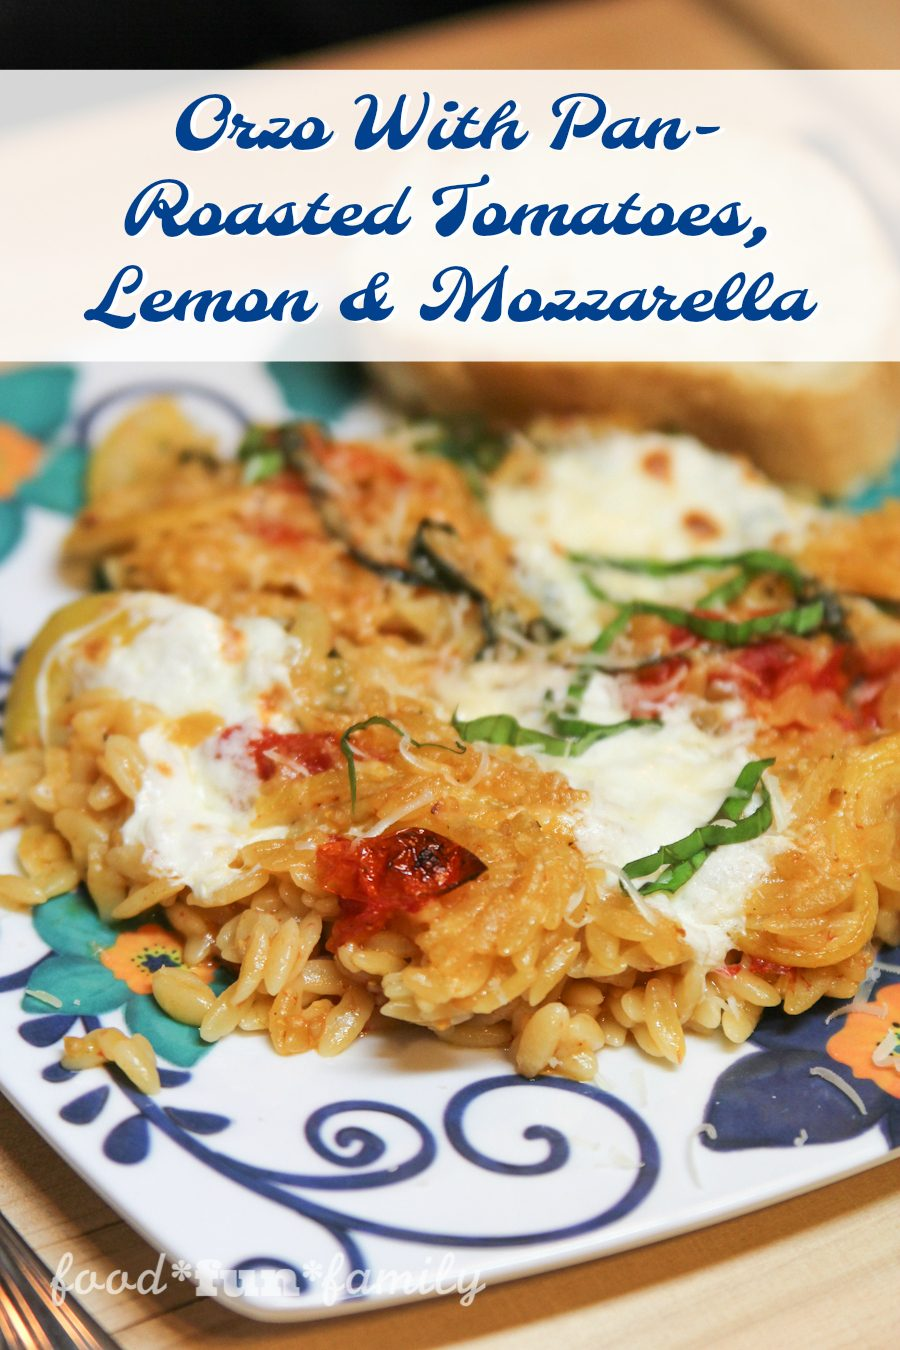 Orzo With Pan-Roasted Tomatoes, Lemon and Mozzarella